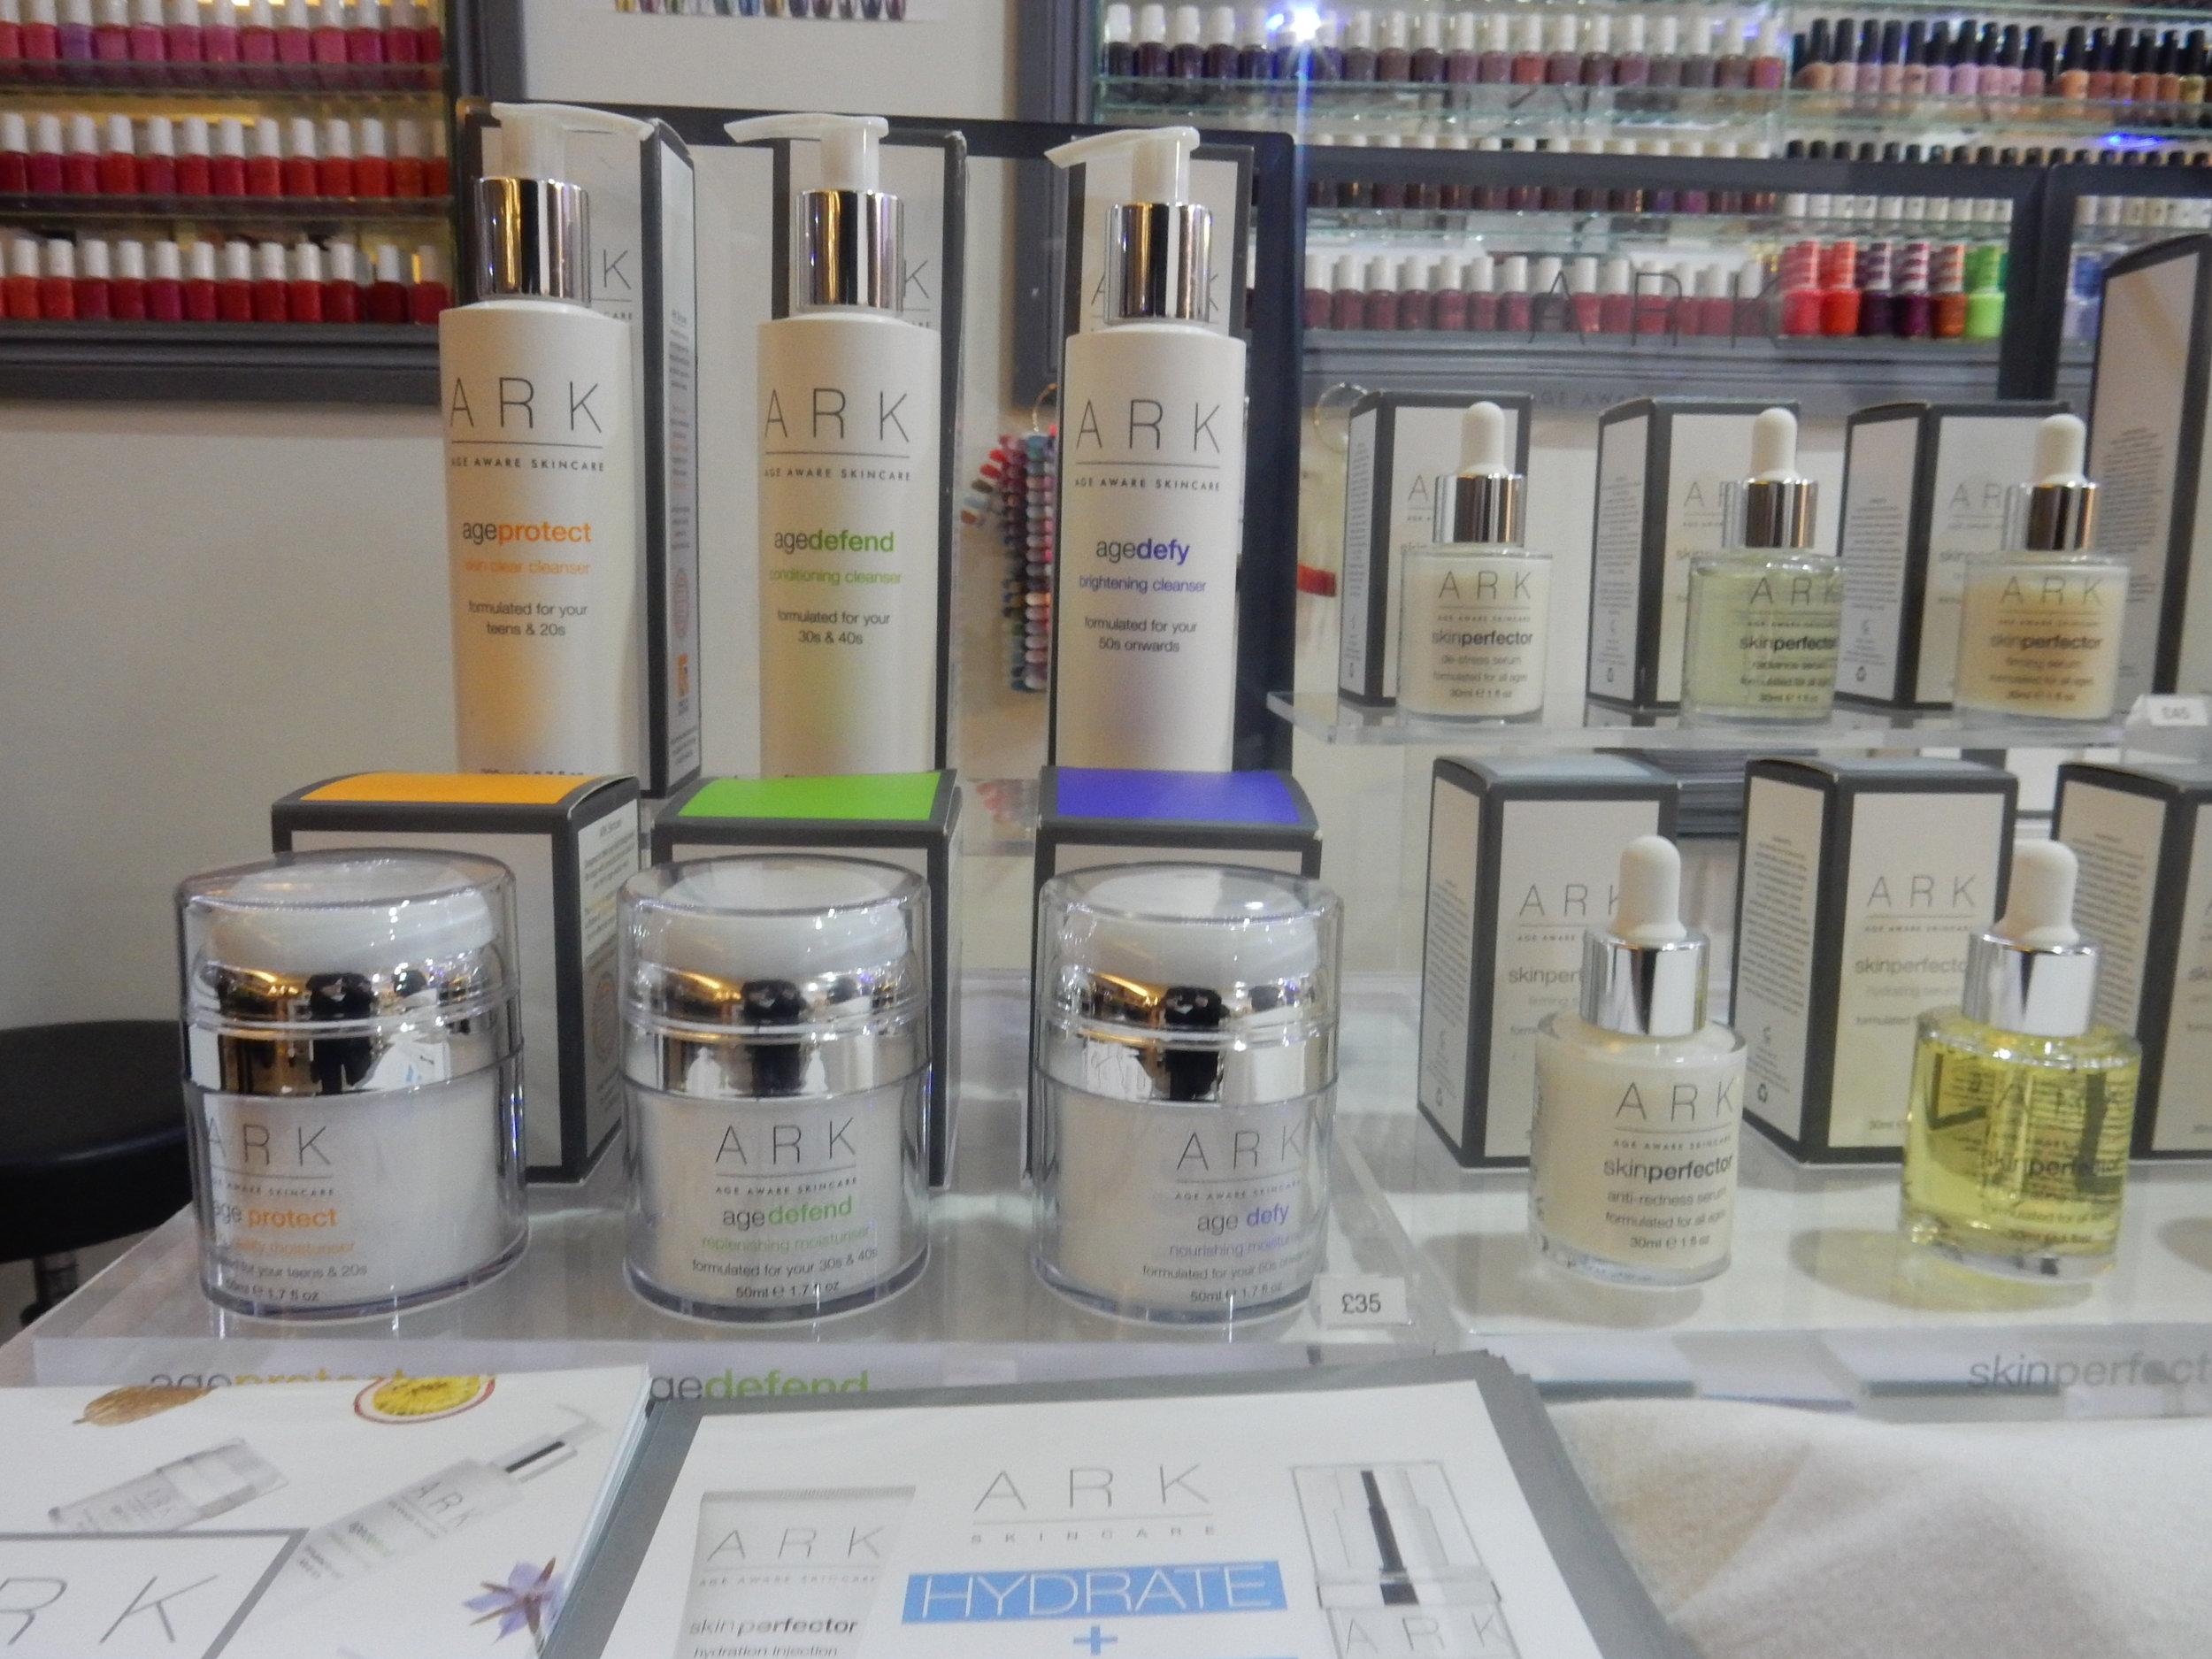 Juvadent beauty blogger event with LDN meet-up